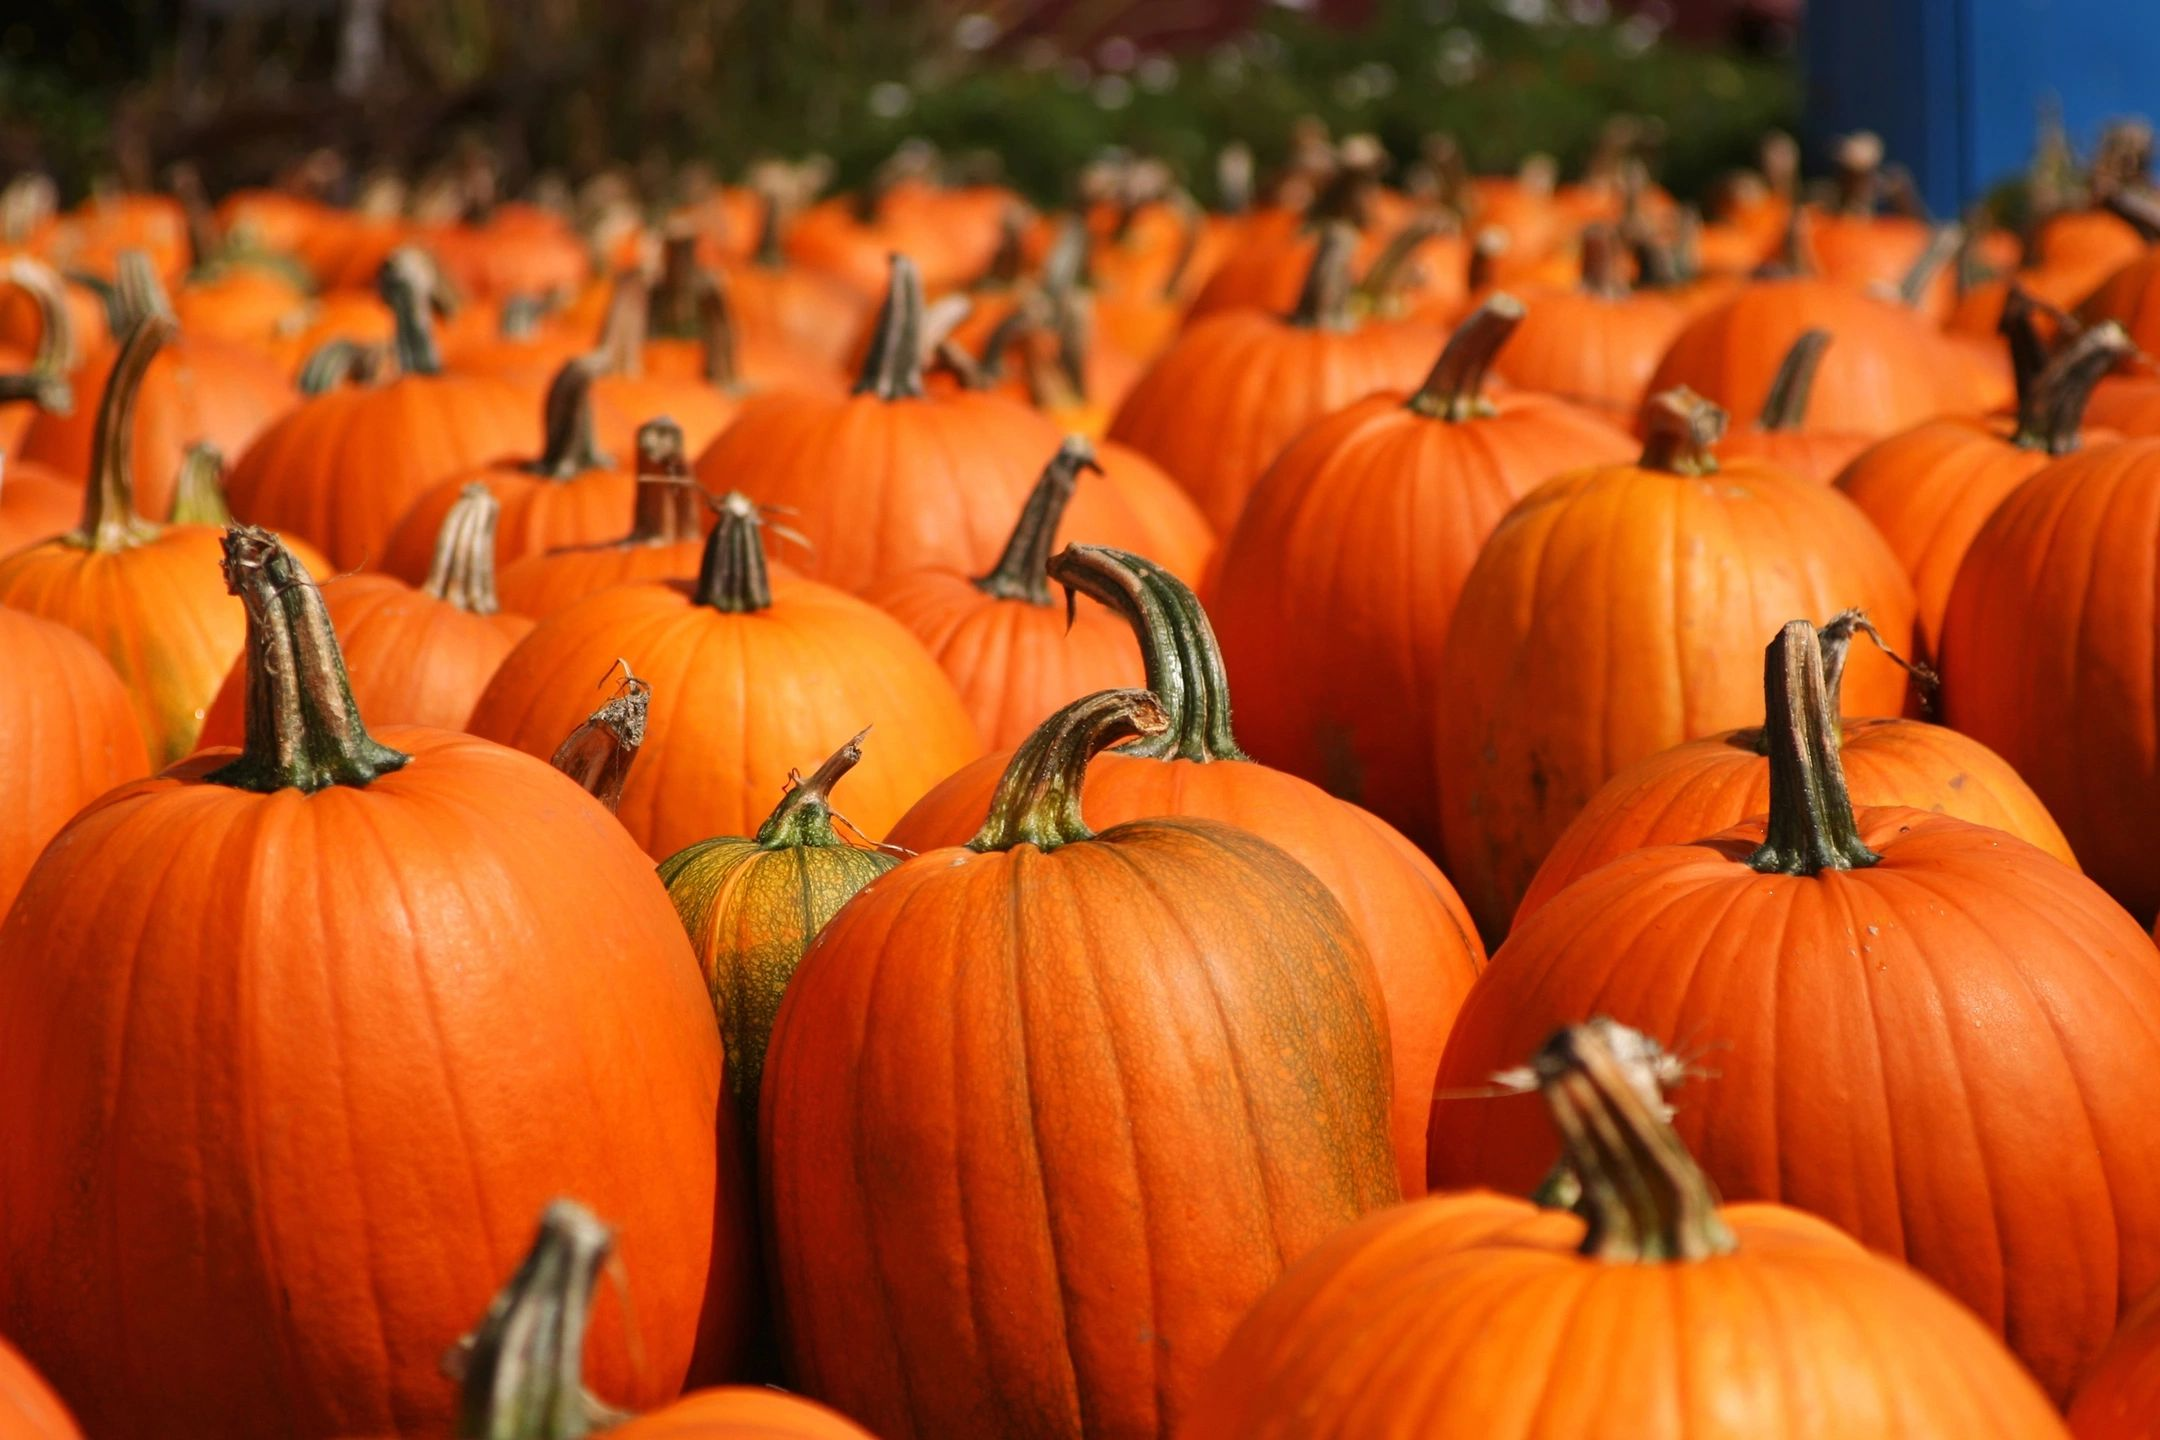 Year-Long Jack-O-Lantern Supply